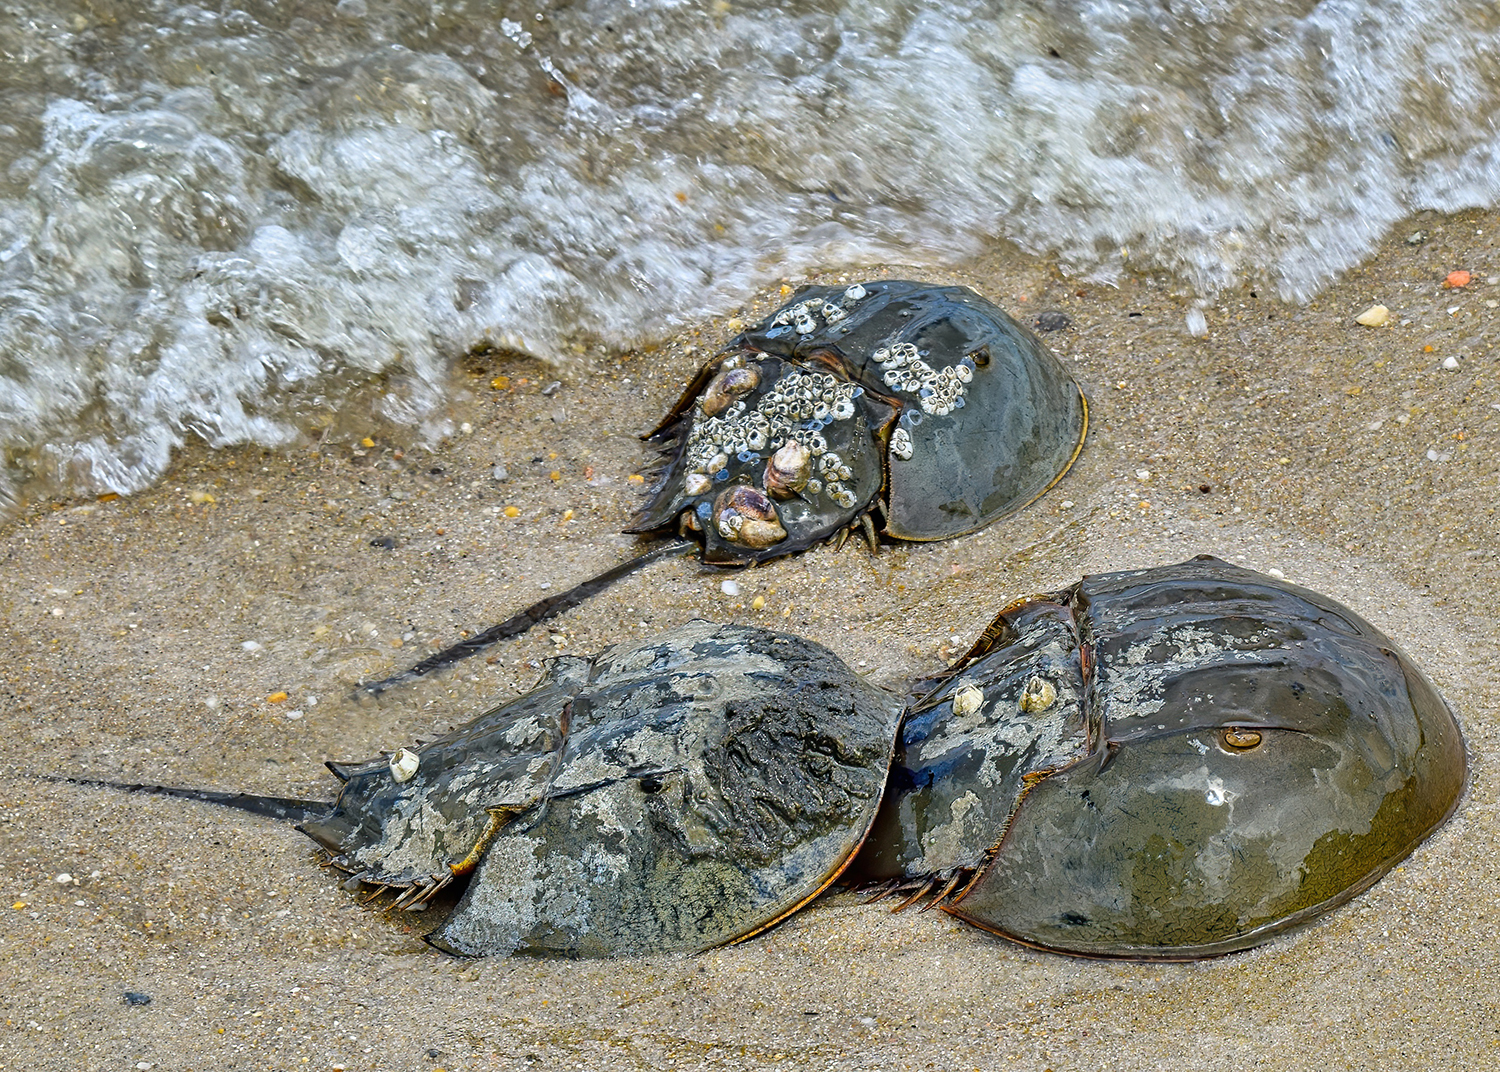 Spawning female horseshoe crabs usually come ashore with a male attached. Photo by Chris Engel